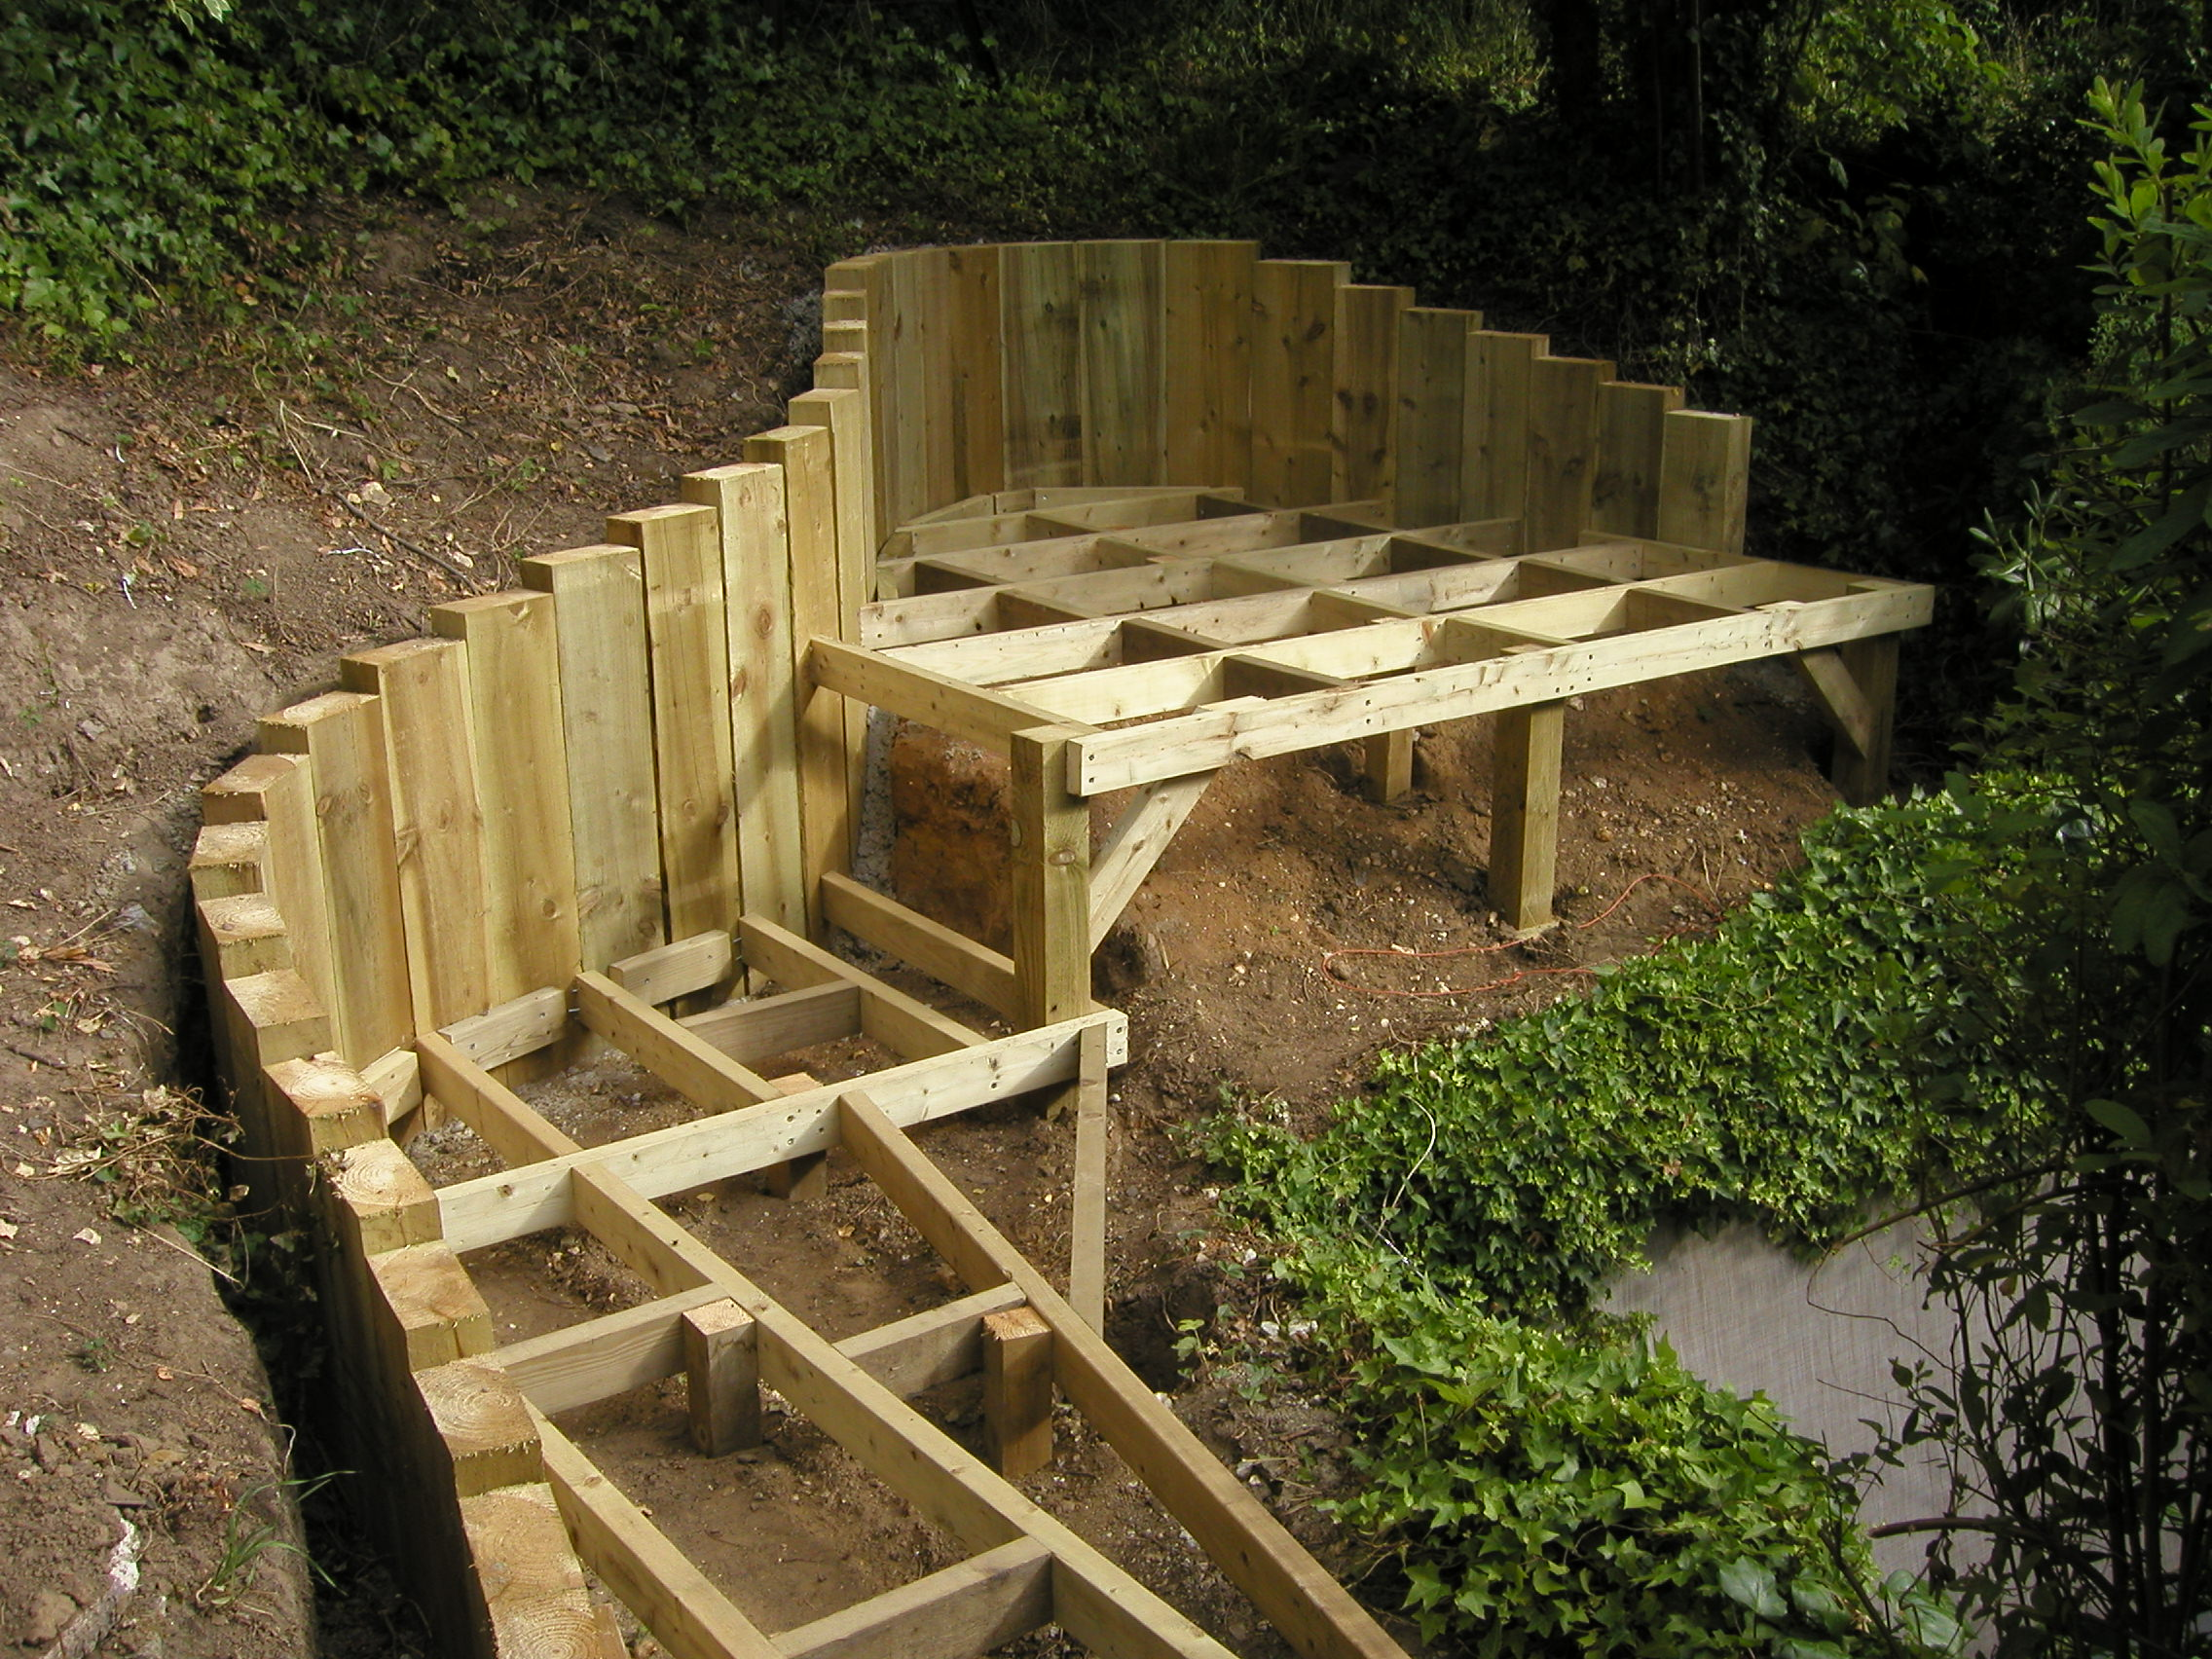 Adl timber structures decking garden landscaping sevenoaks for Best timber for decking